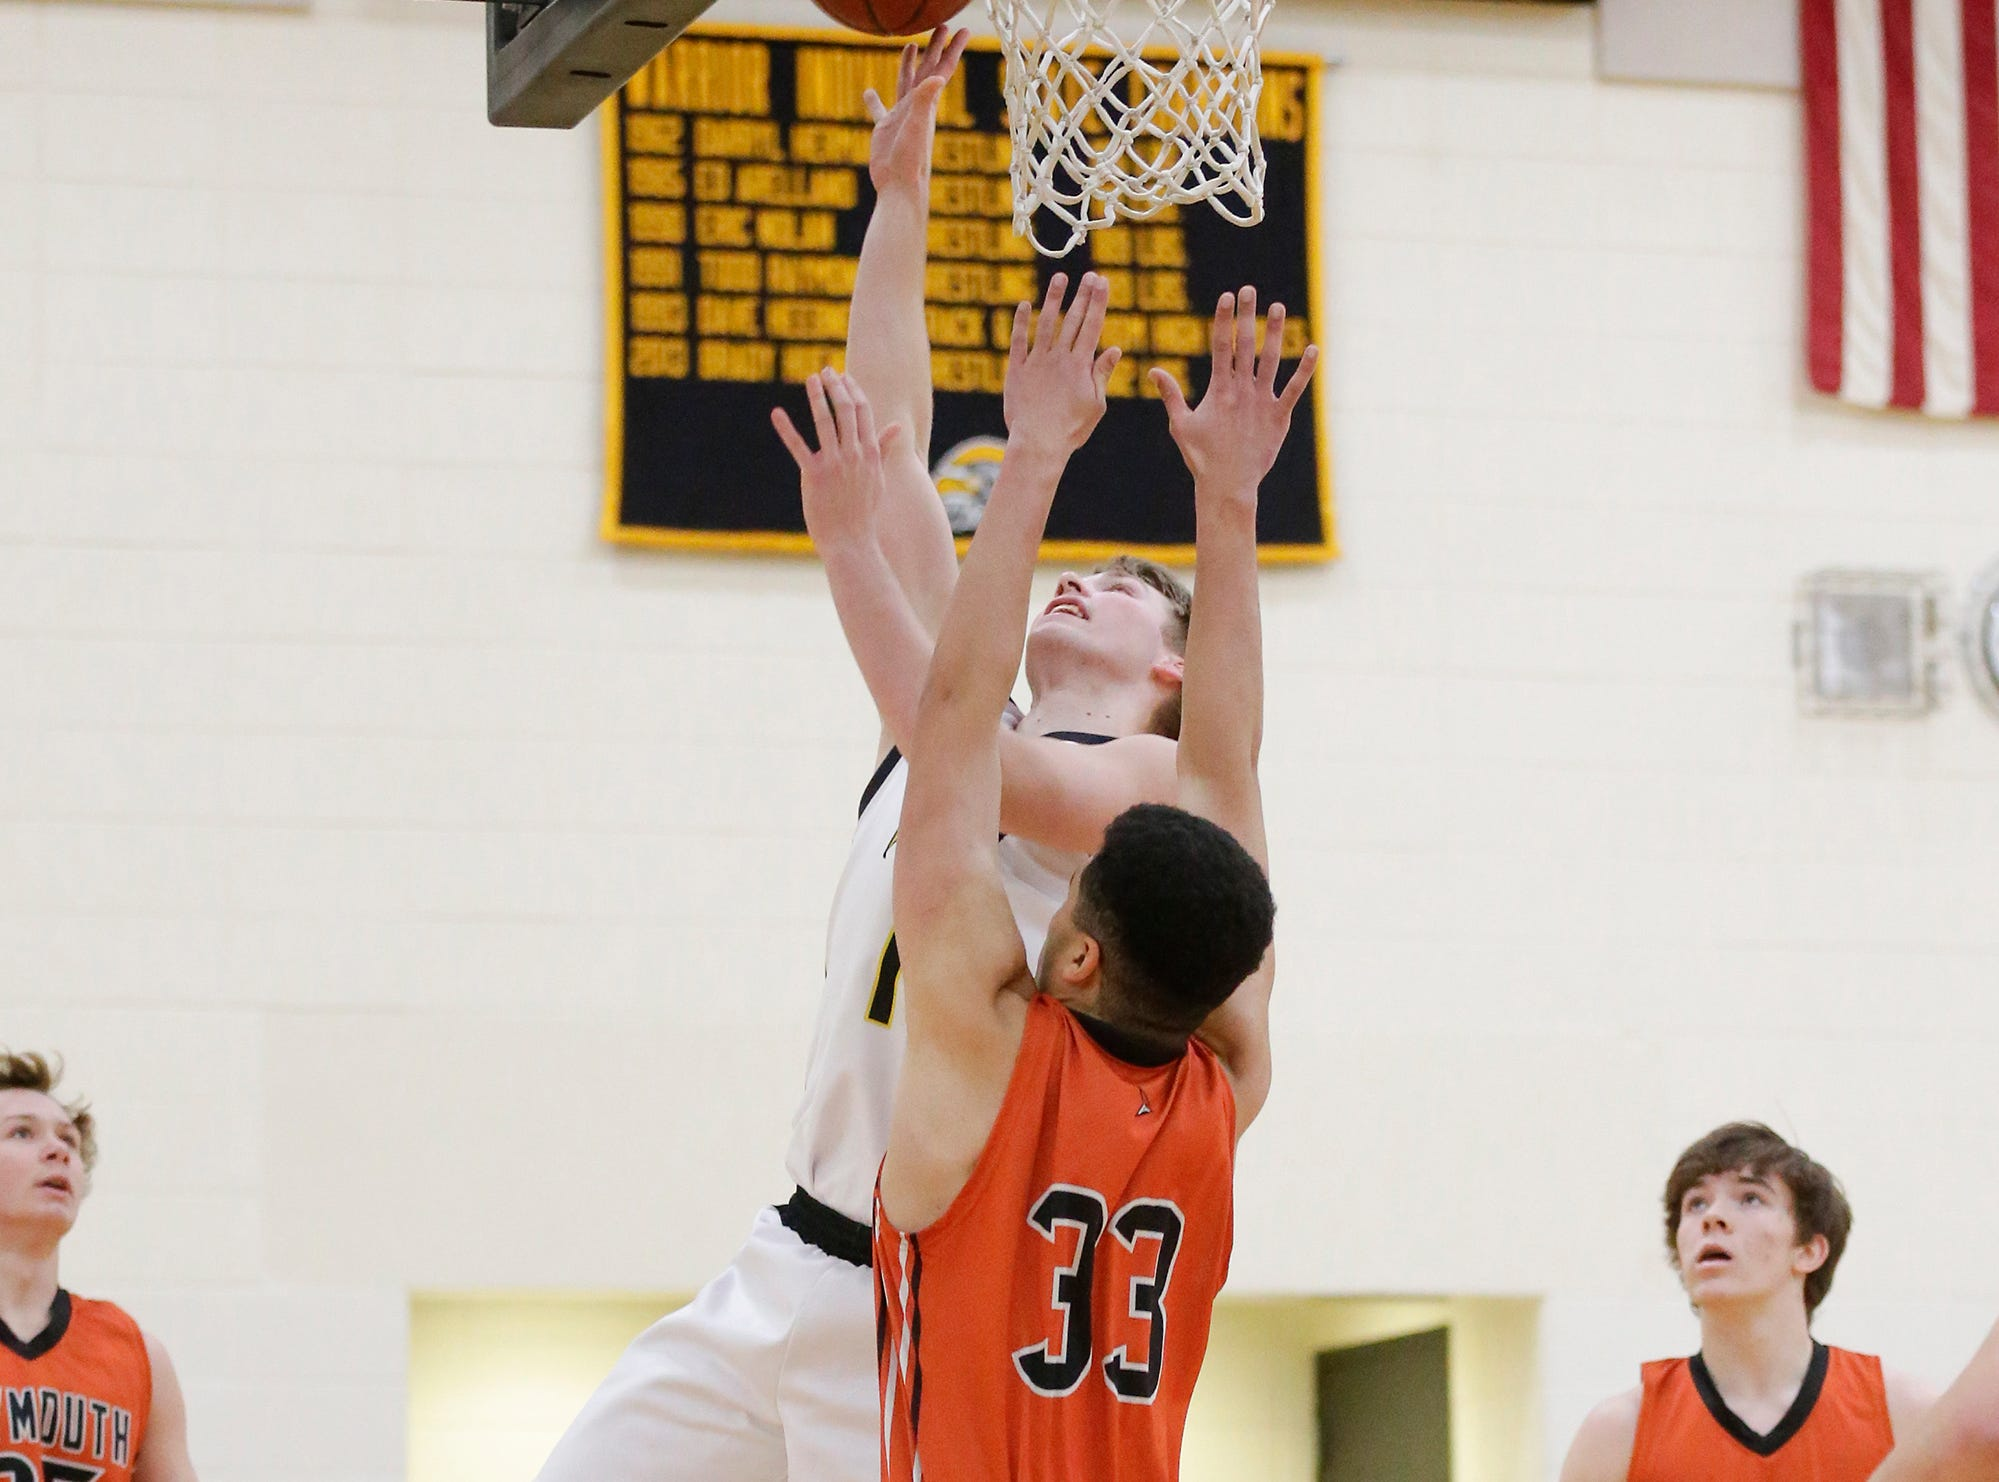 Waupun High School boys basketball's Marcus Domask (1) goes up for a basket over Plymouth High School's Nick Falls (33) during their game Friday, February 15, 2019 in Waupun. Doug Raflik/USA TODAY NETWORK-Wisconsin